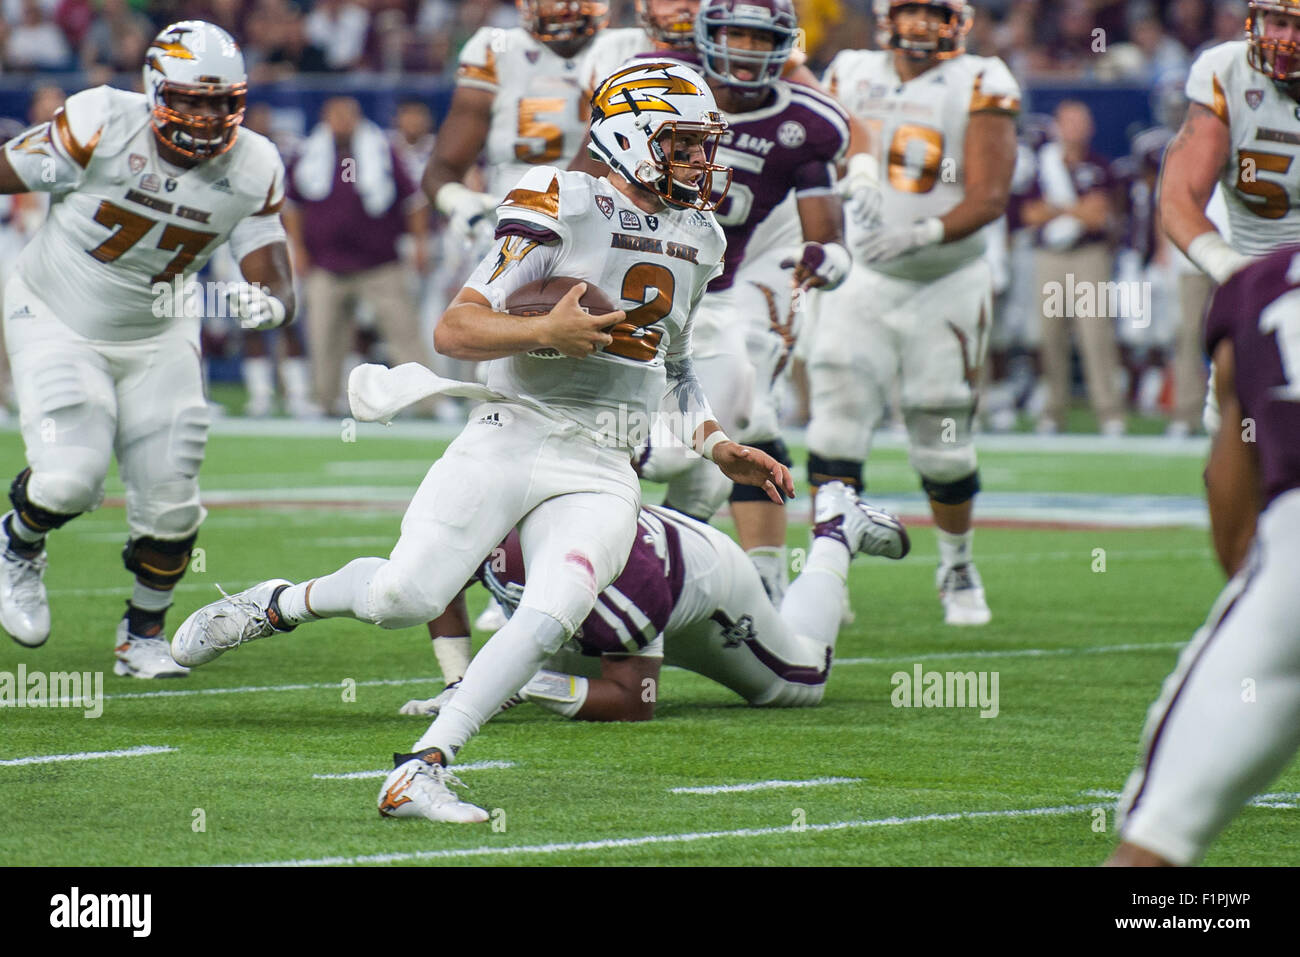 September 5, 2015: Arizona State Sun Devils quarterback Mike Bercovici (2) rushes for a touchdown during the 2nd - Stock Image